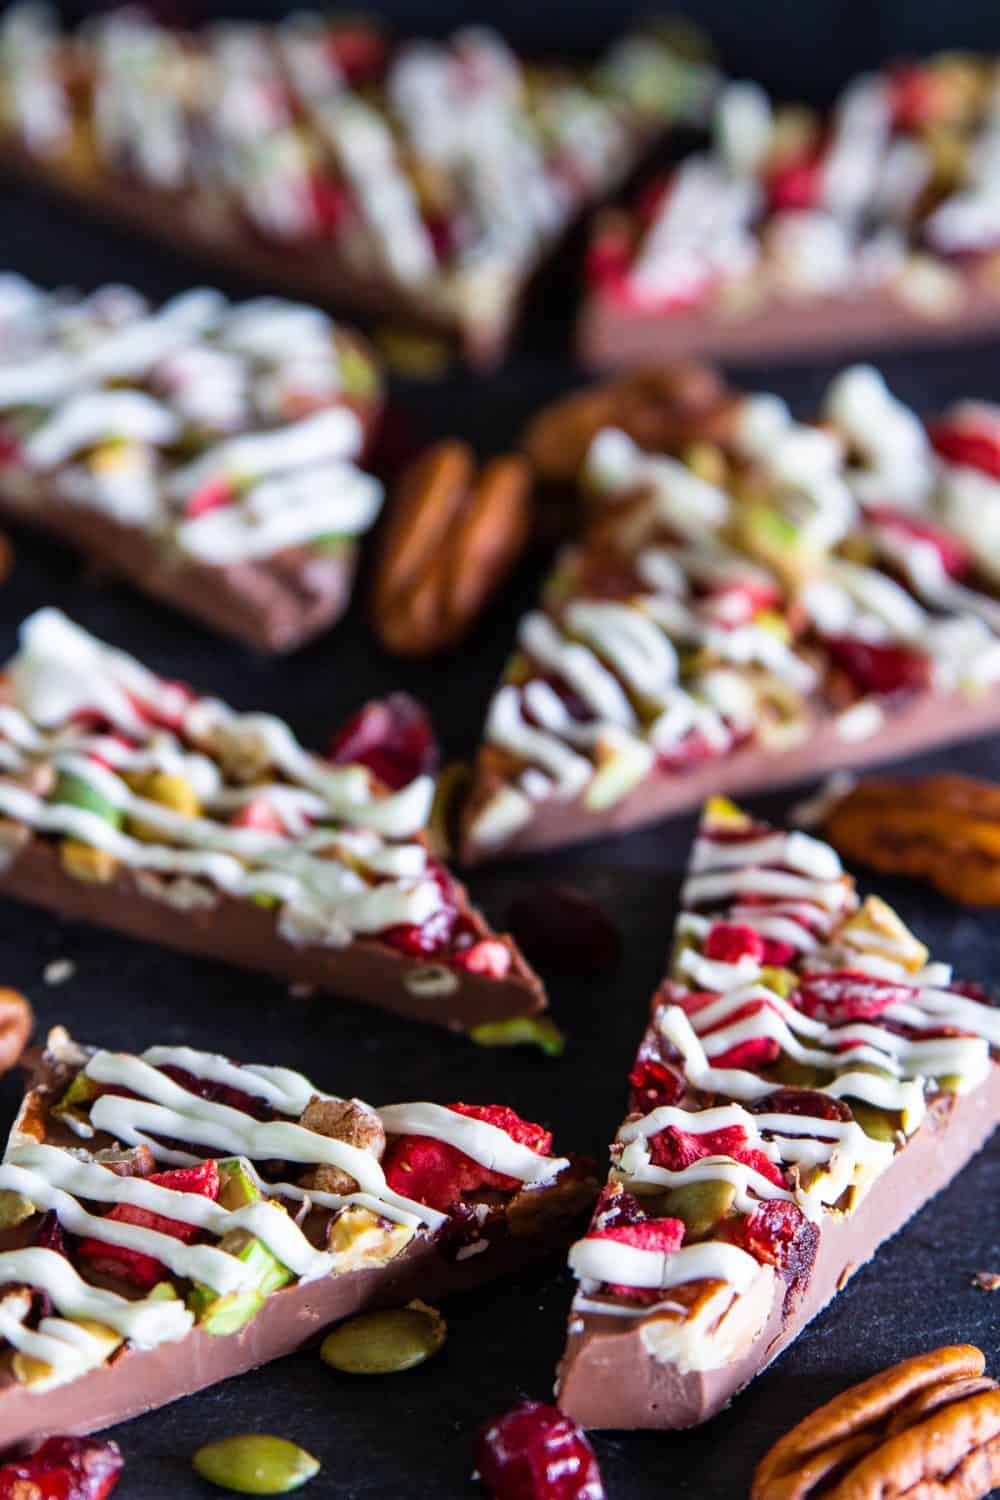 Up close picture of large pieces of chocolate bark with dried fruits and nuts and drizzled on top with white chocolate laying on a dark surface